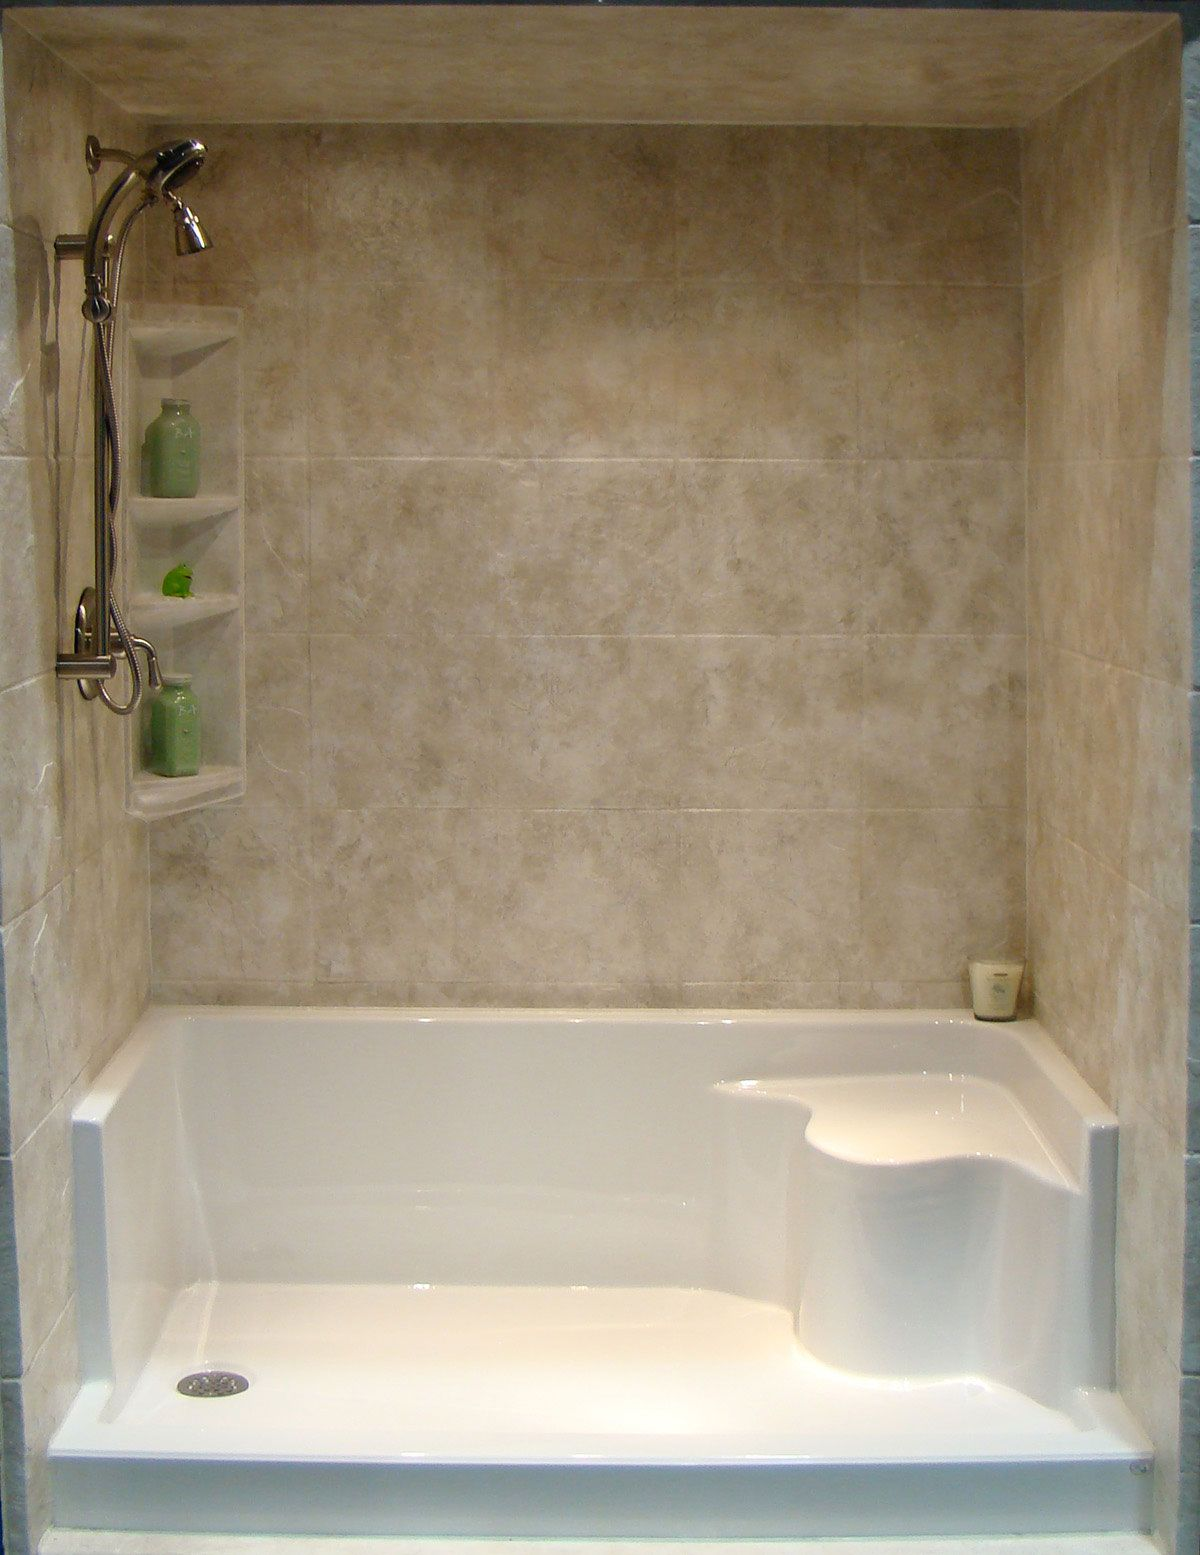 Tub An Shower Conversion Ideas | Bathtub Refinishing   Tub To Shower  Conversions | Rebath TodayRe Bath